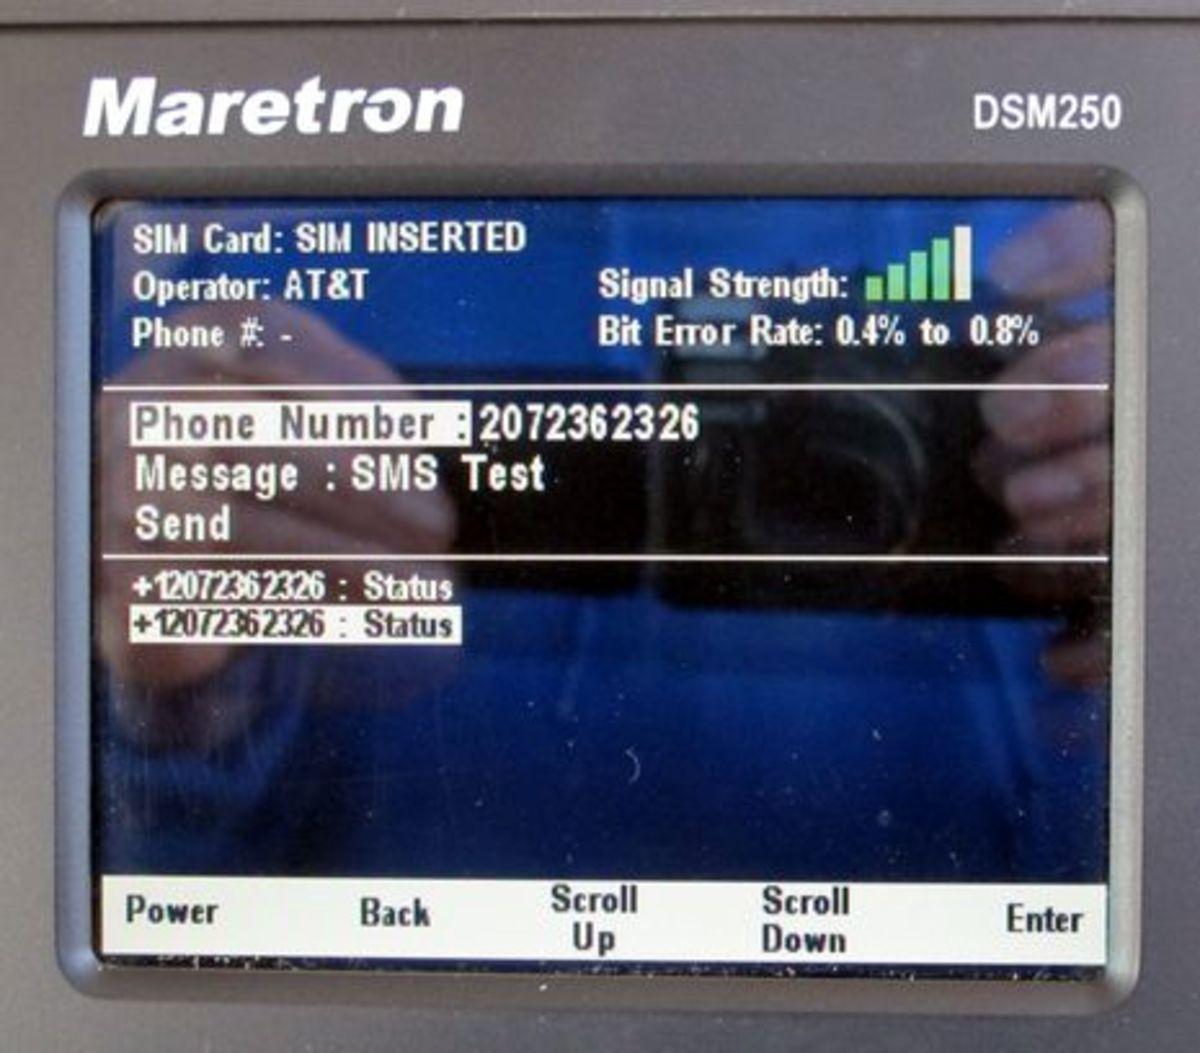 Wilson_AG_Quint_Booster_working_on_AT_T_Maretron_SMS100_cPanbo.jpg